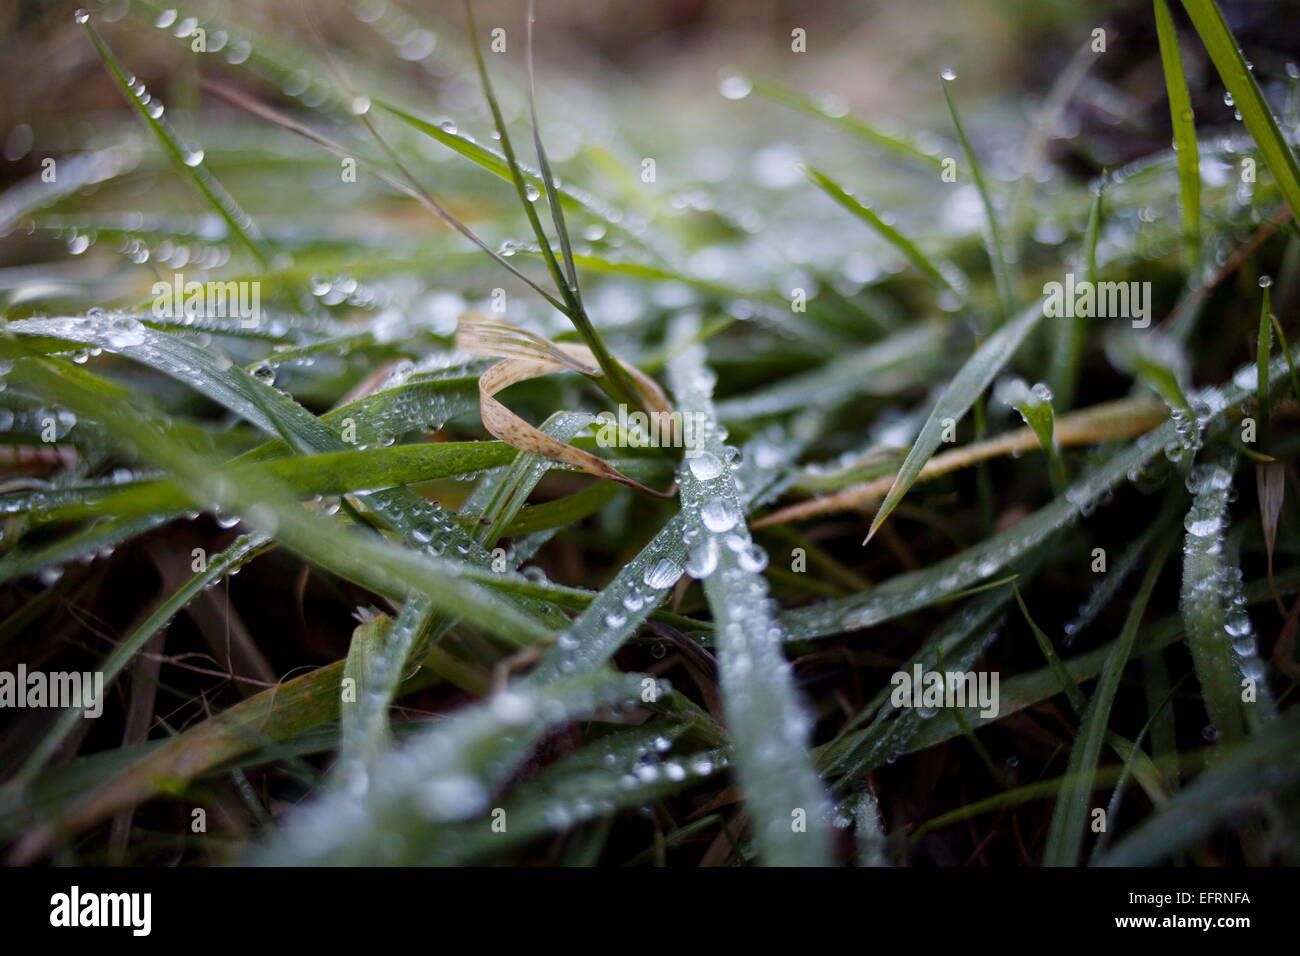 Grass wet with dew. - Stock Image